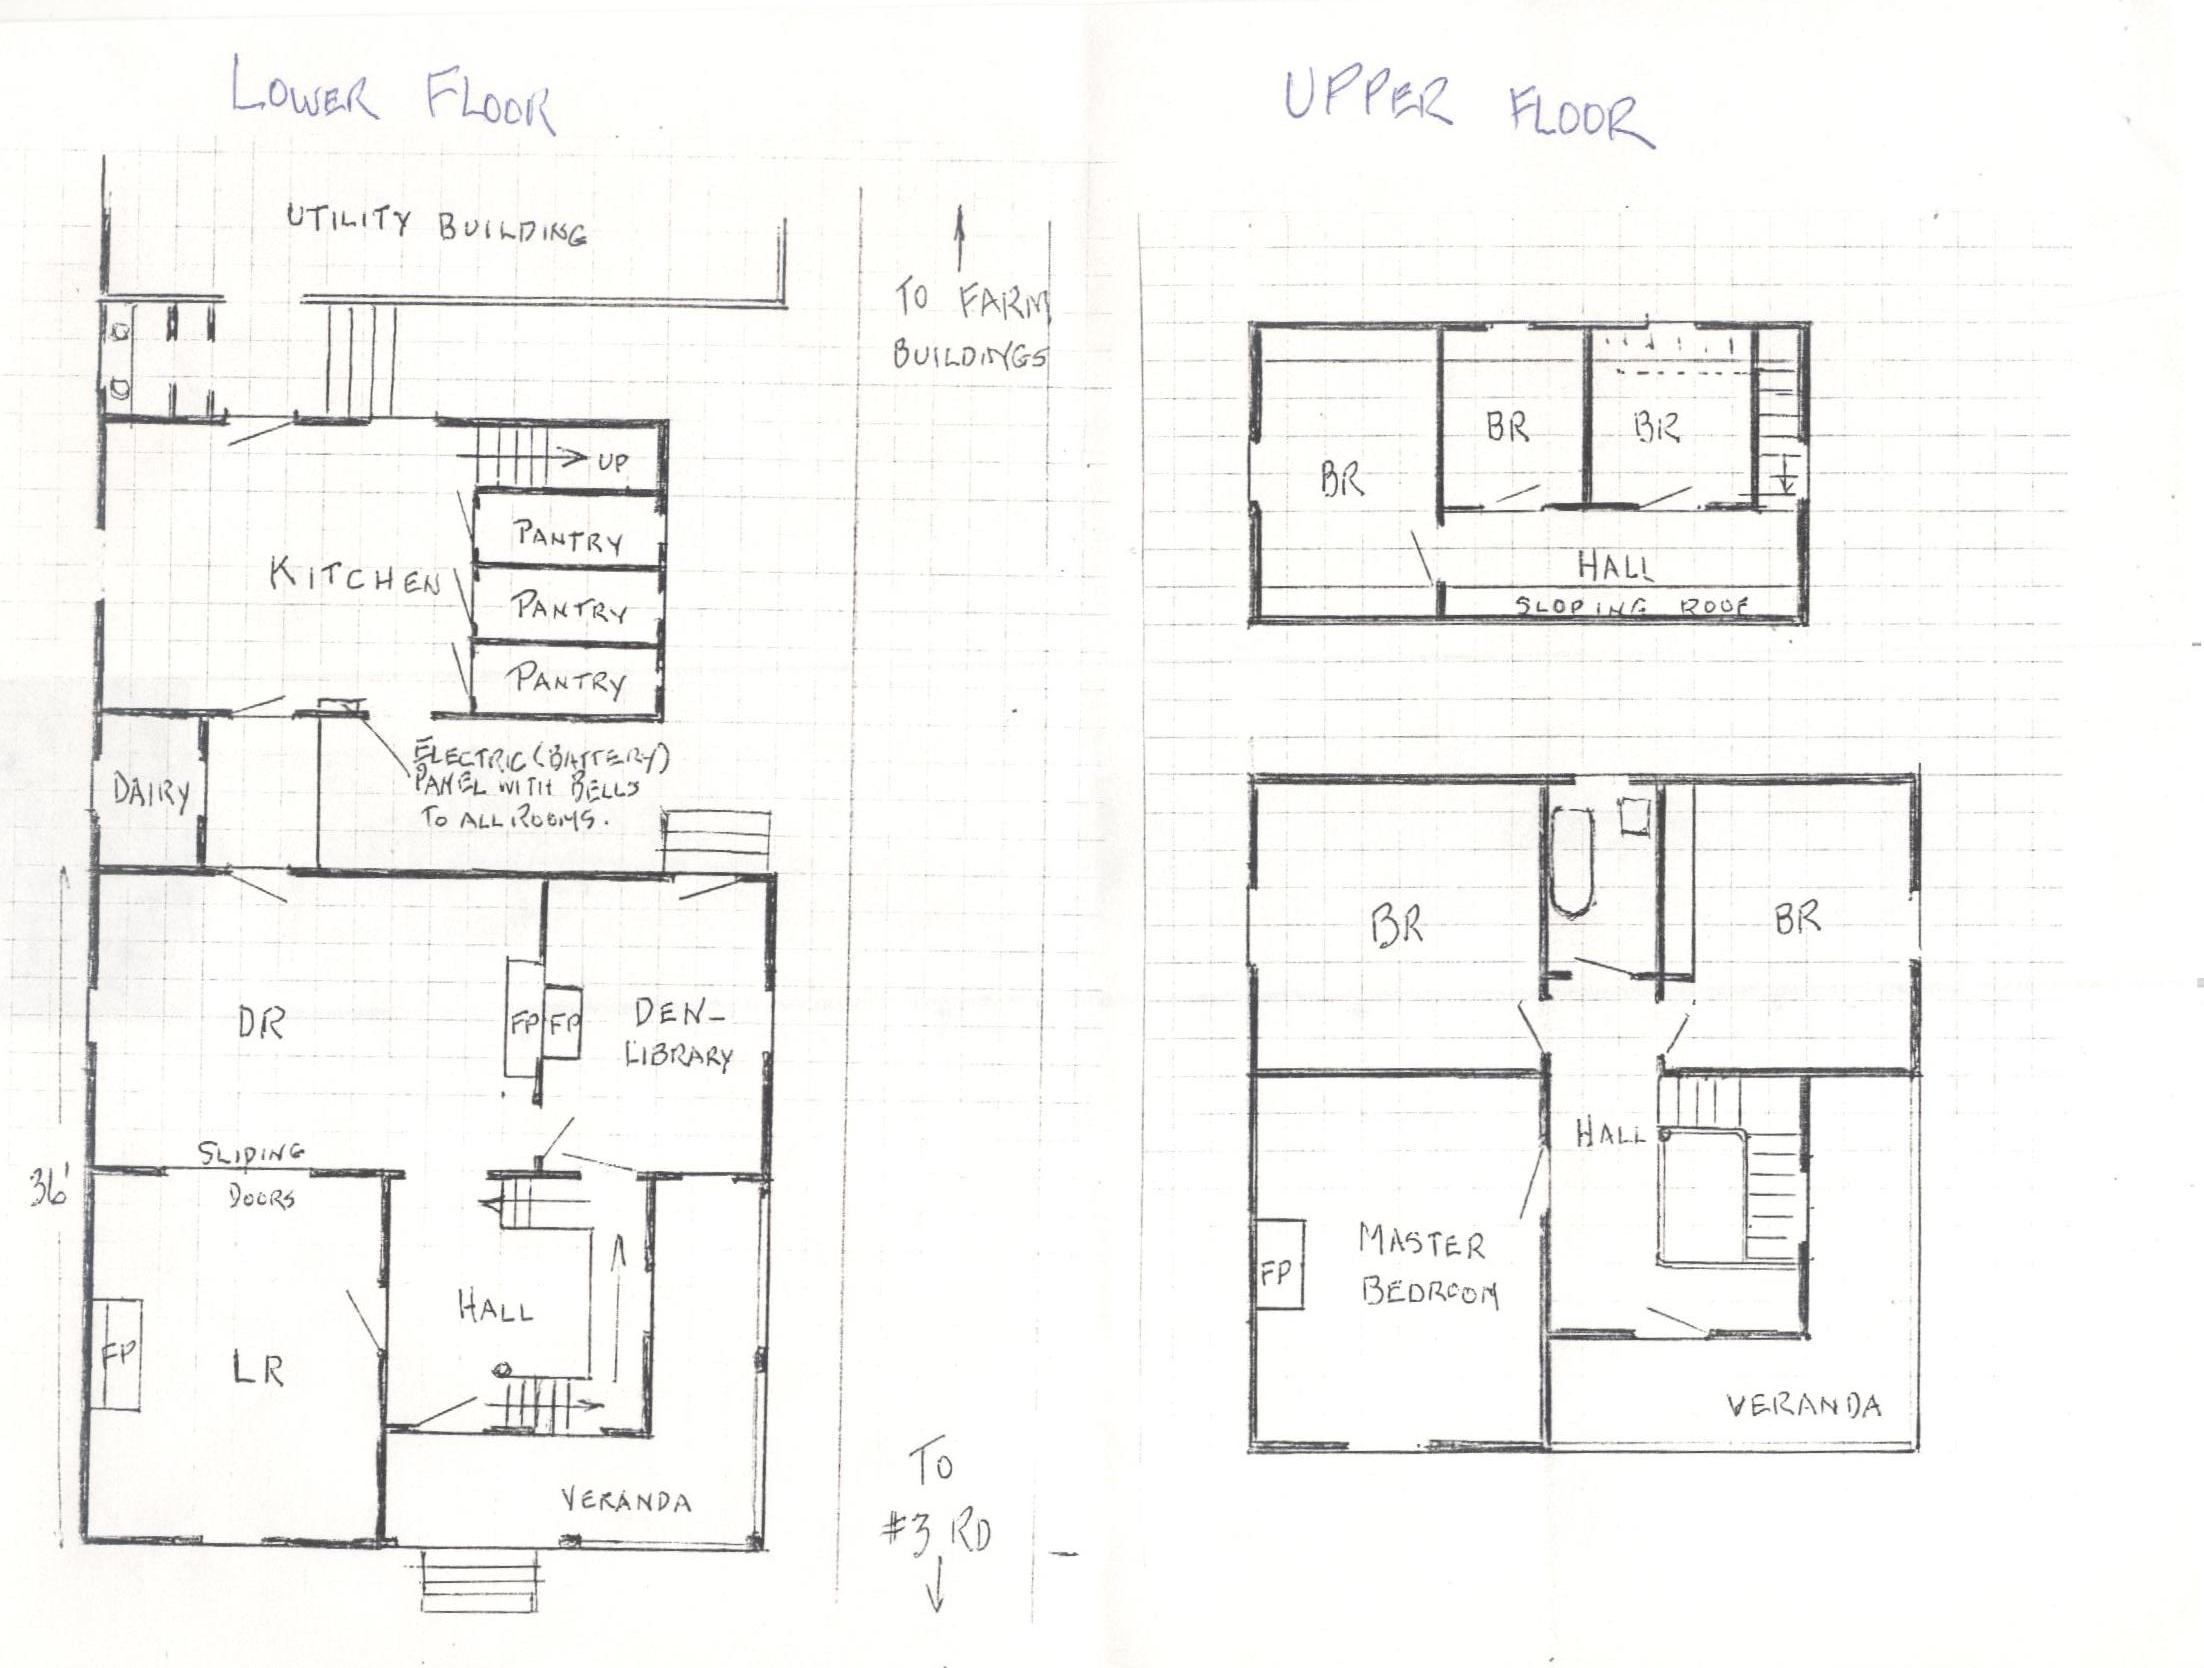 Servants quarters house plans house design plans for Servant quarters floor plans